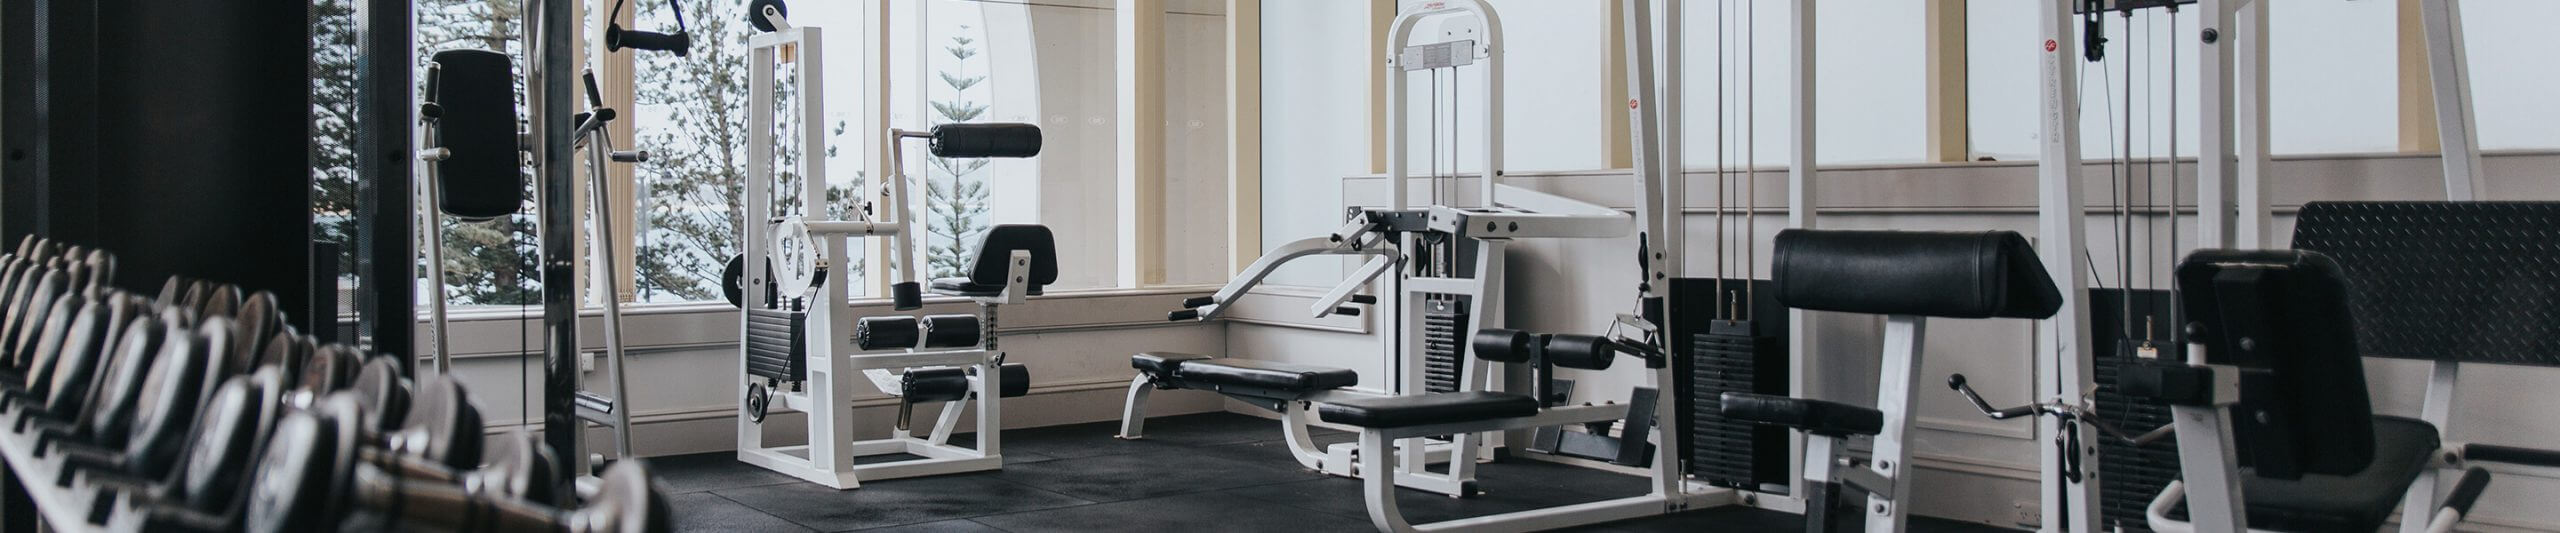 panorama of hotel gym